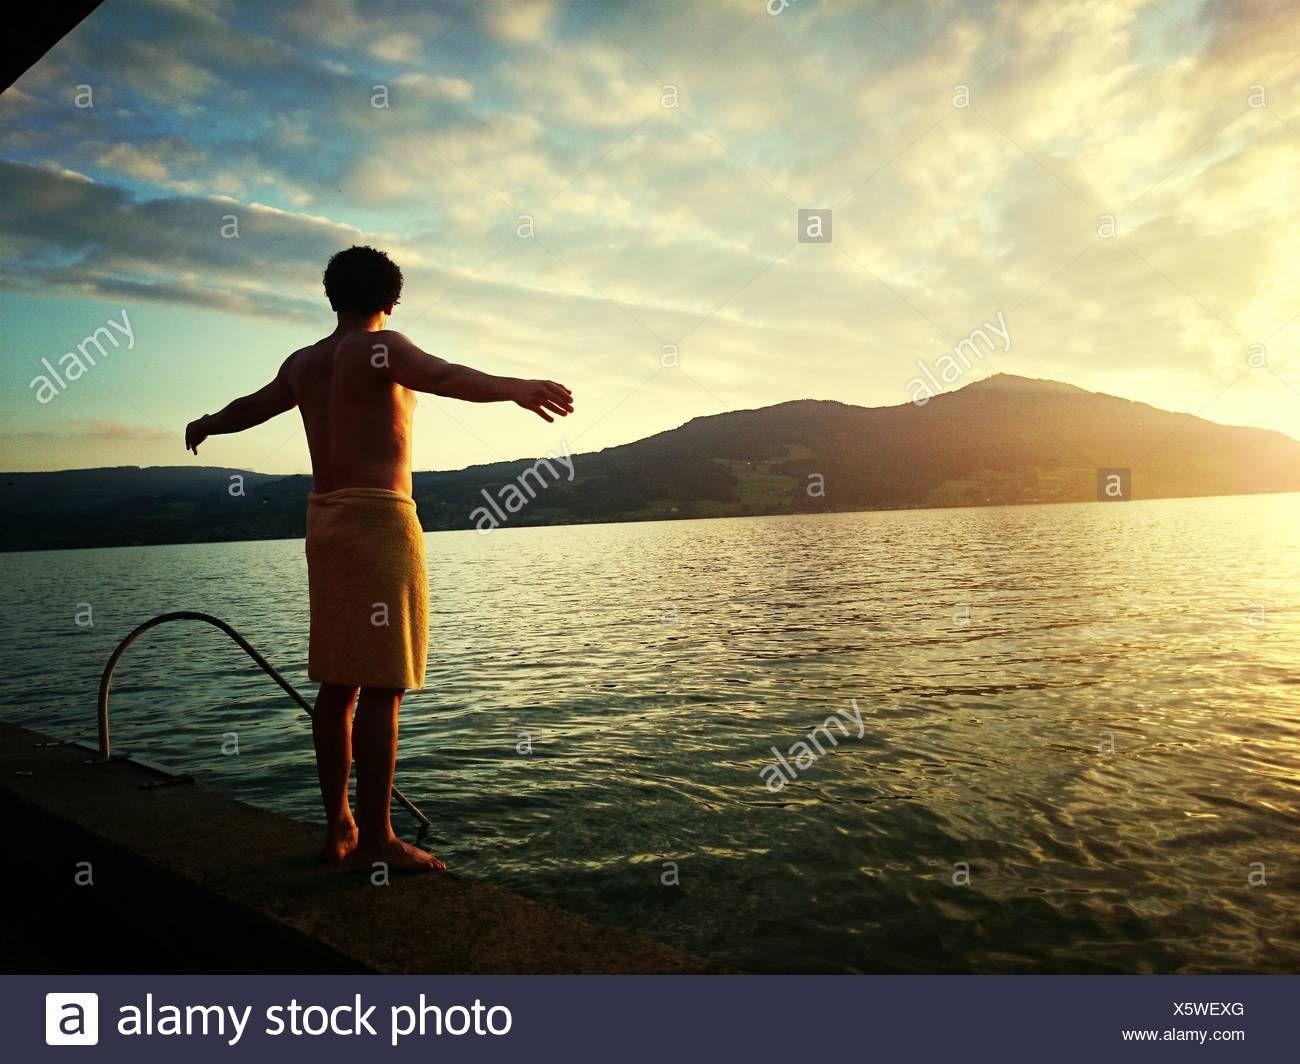 Rear View Of Man With Arms Outstretched Standing On Retaining Wall At Sea - Stock Image